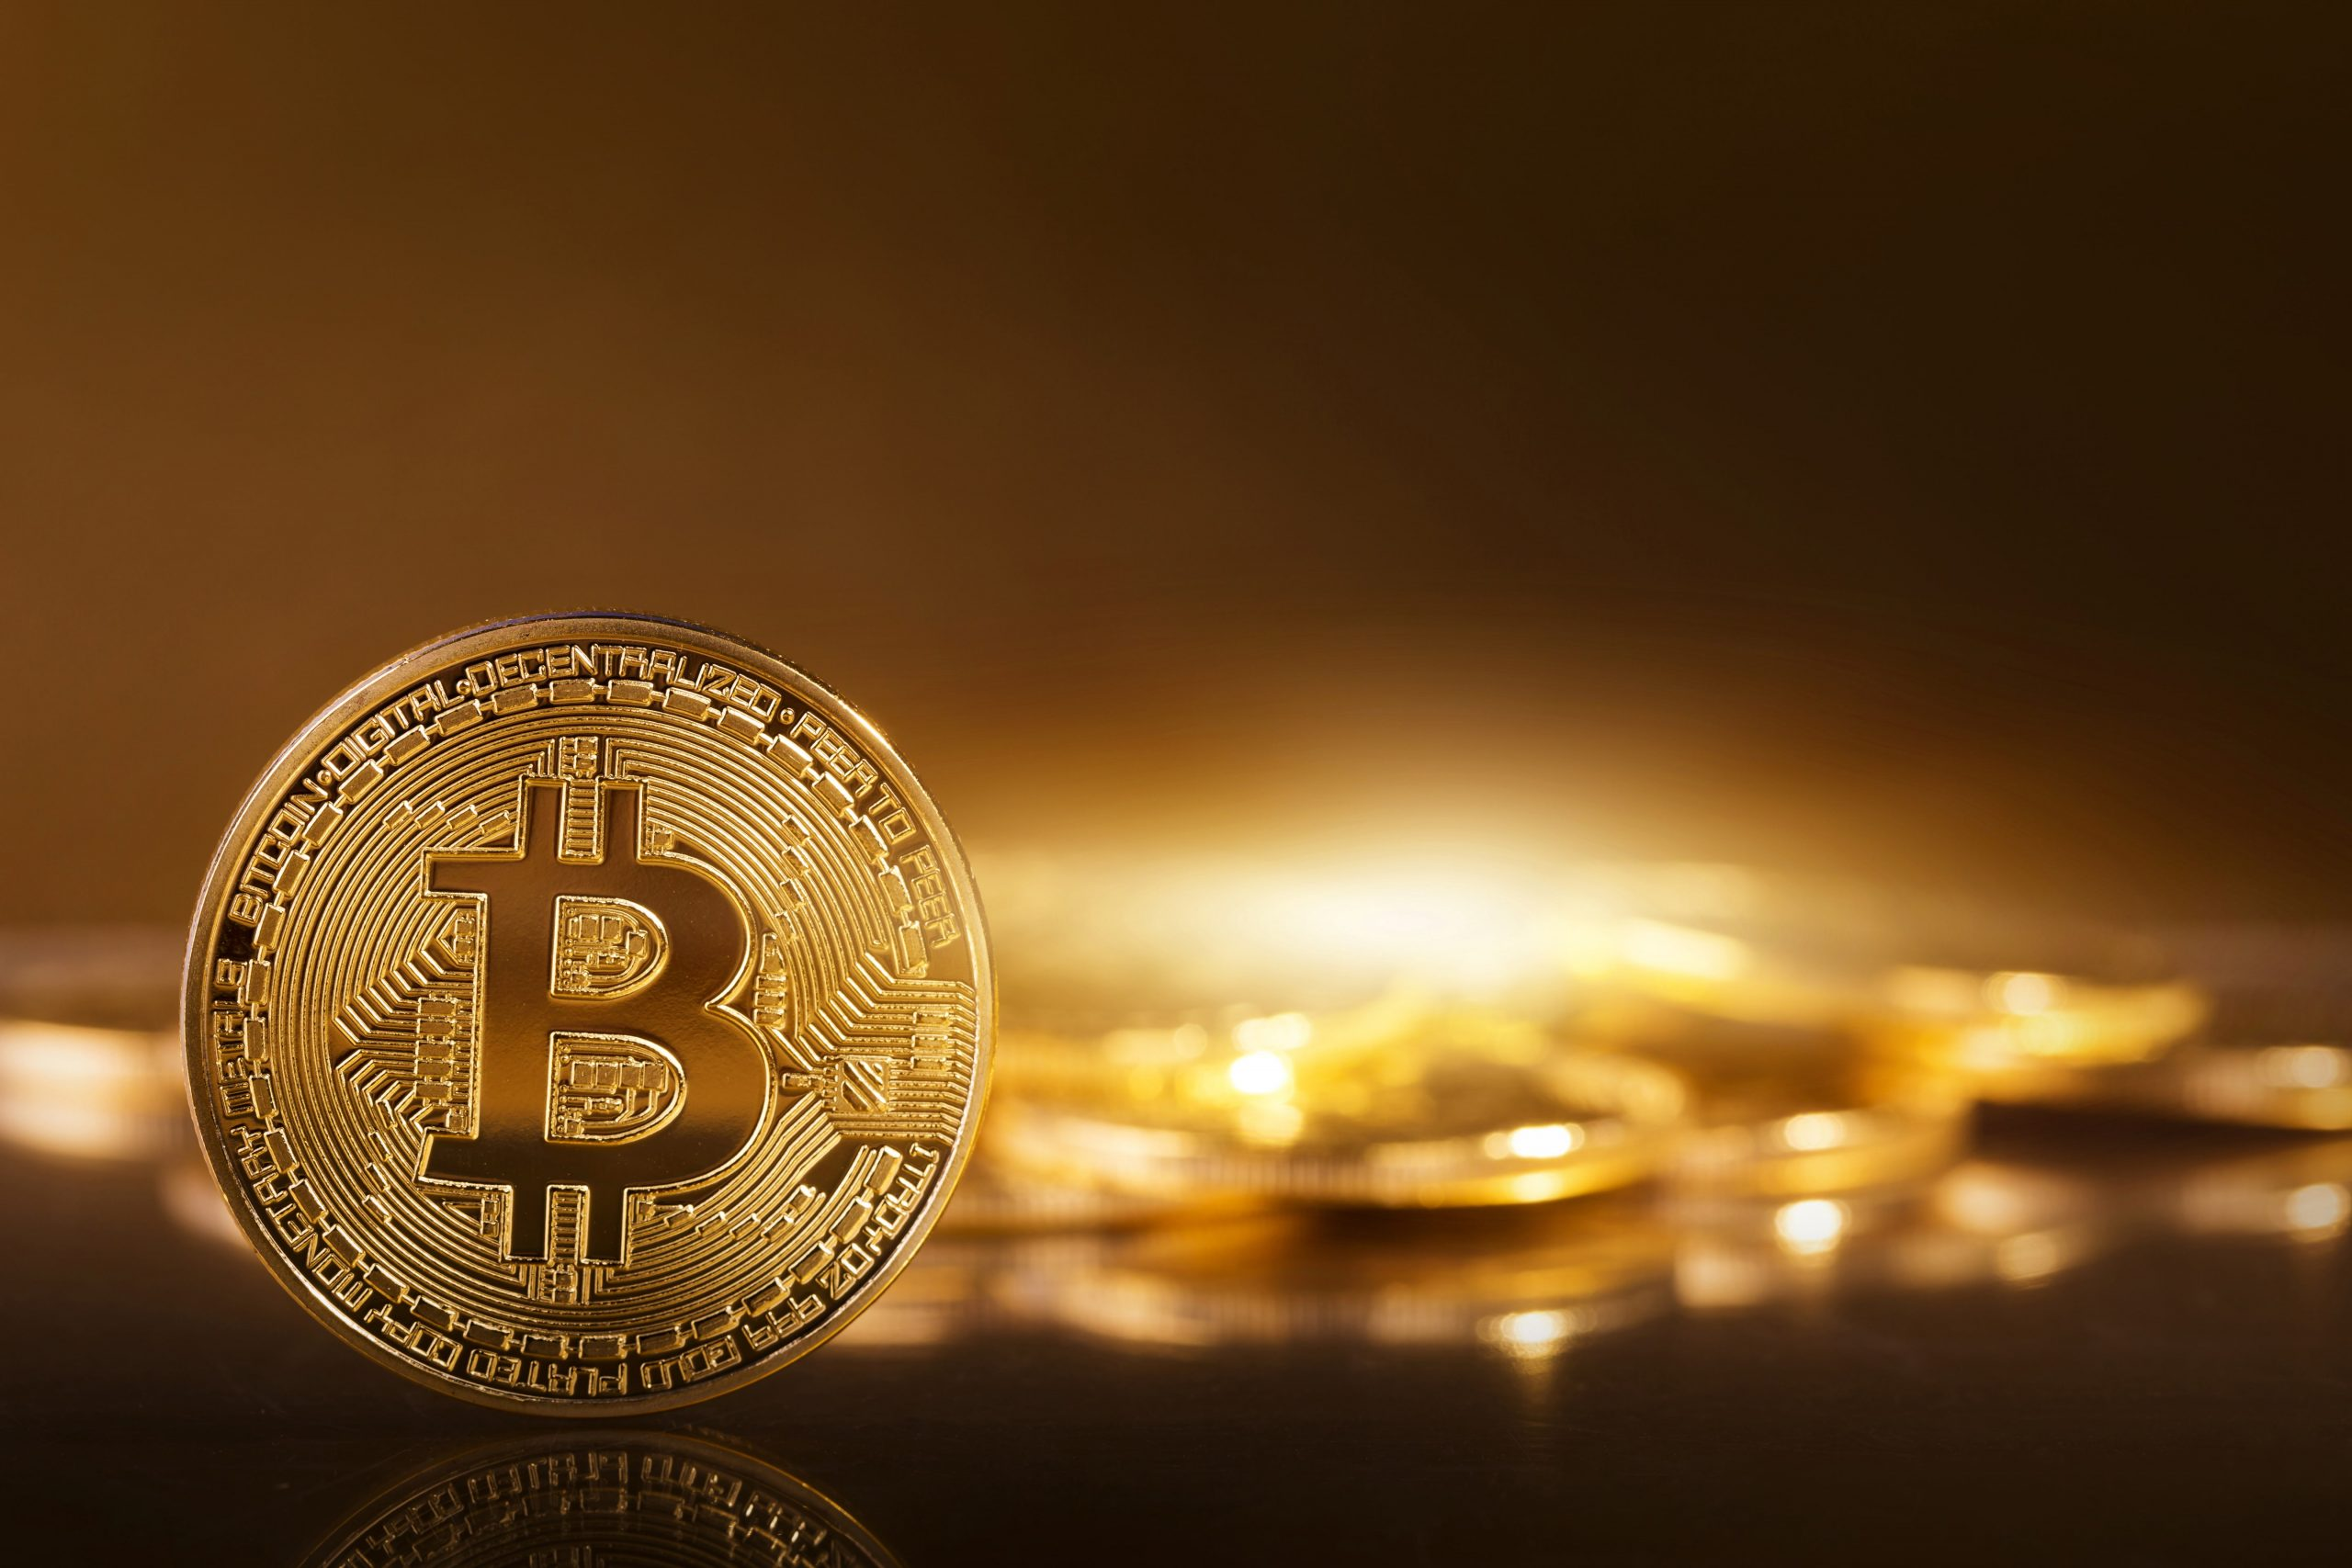 Bitcoin uses about as much energy as Switzerland